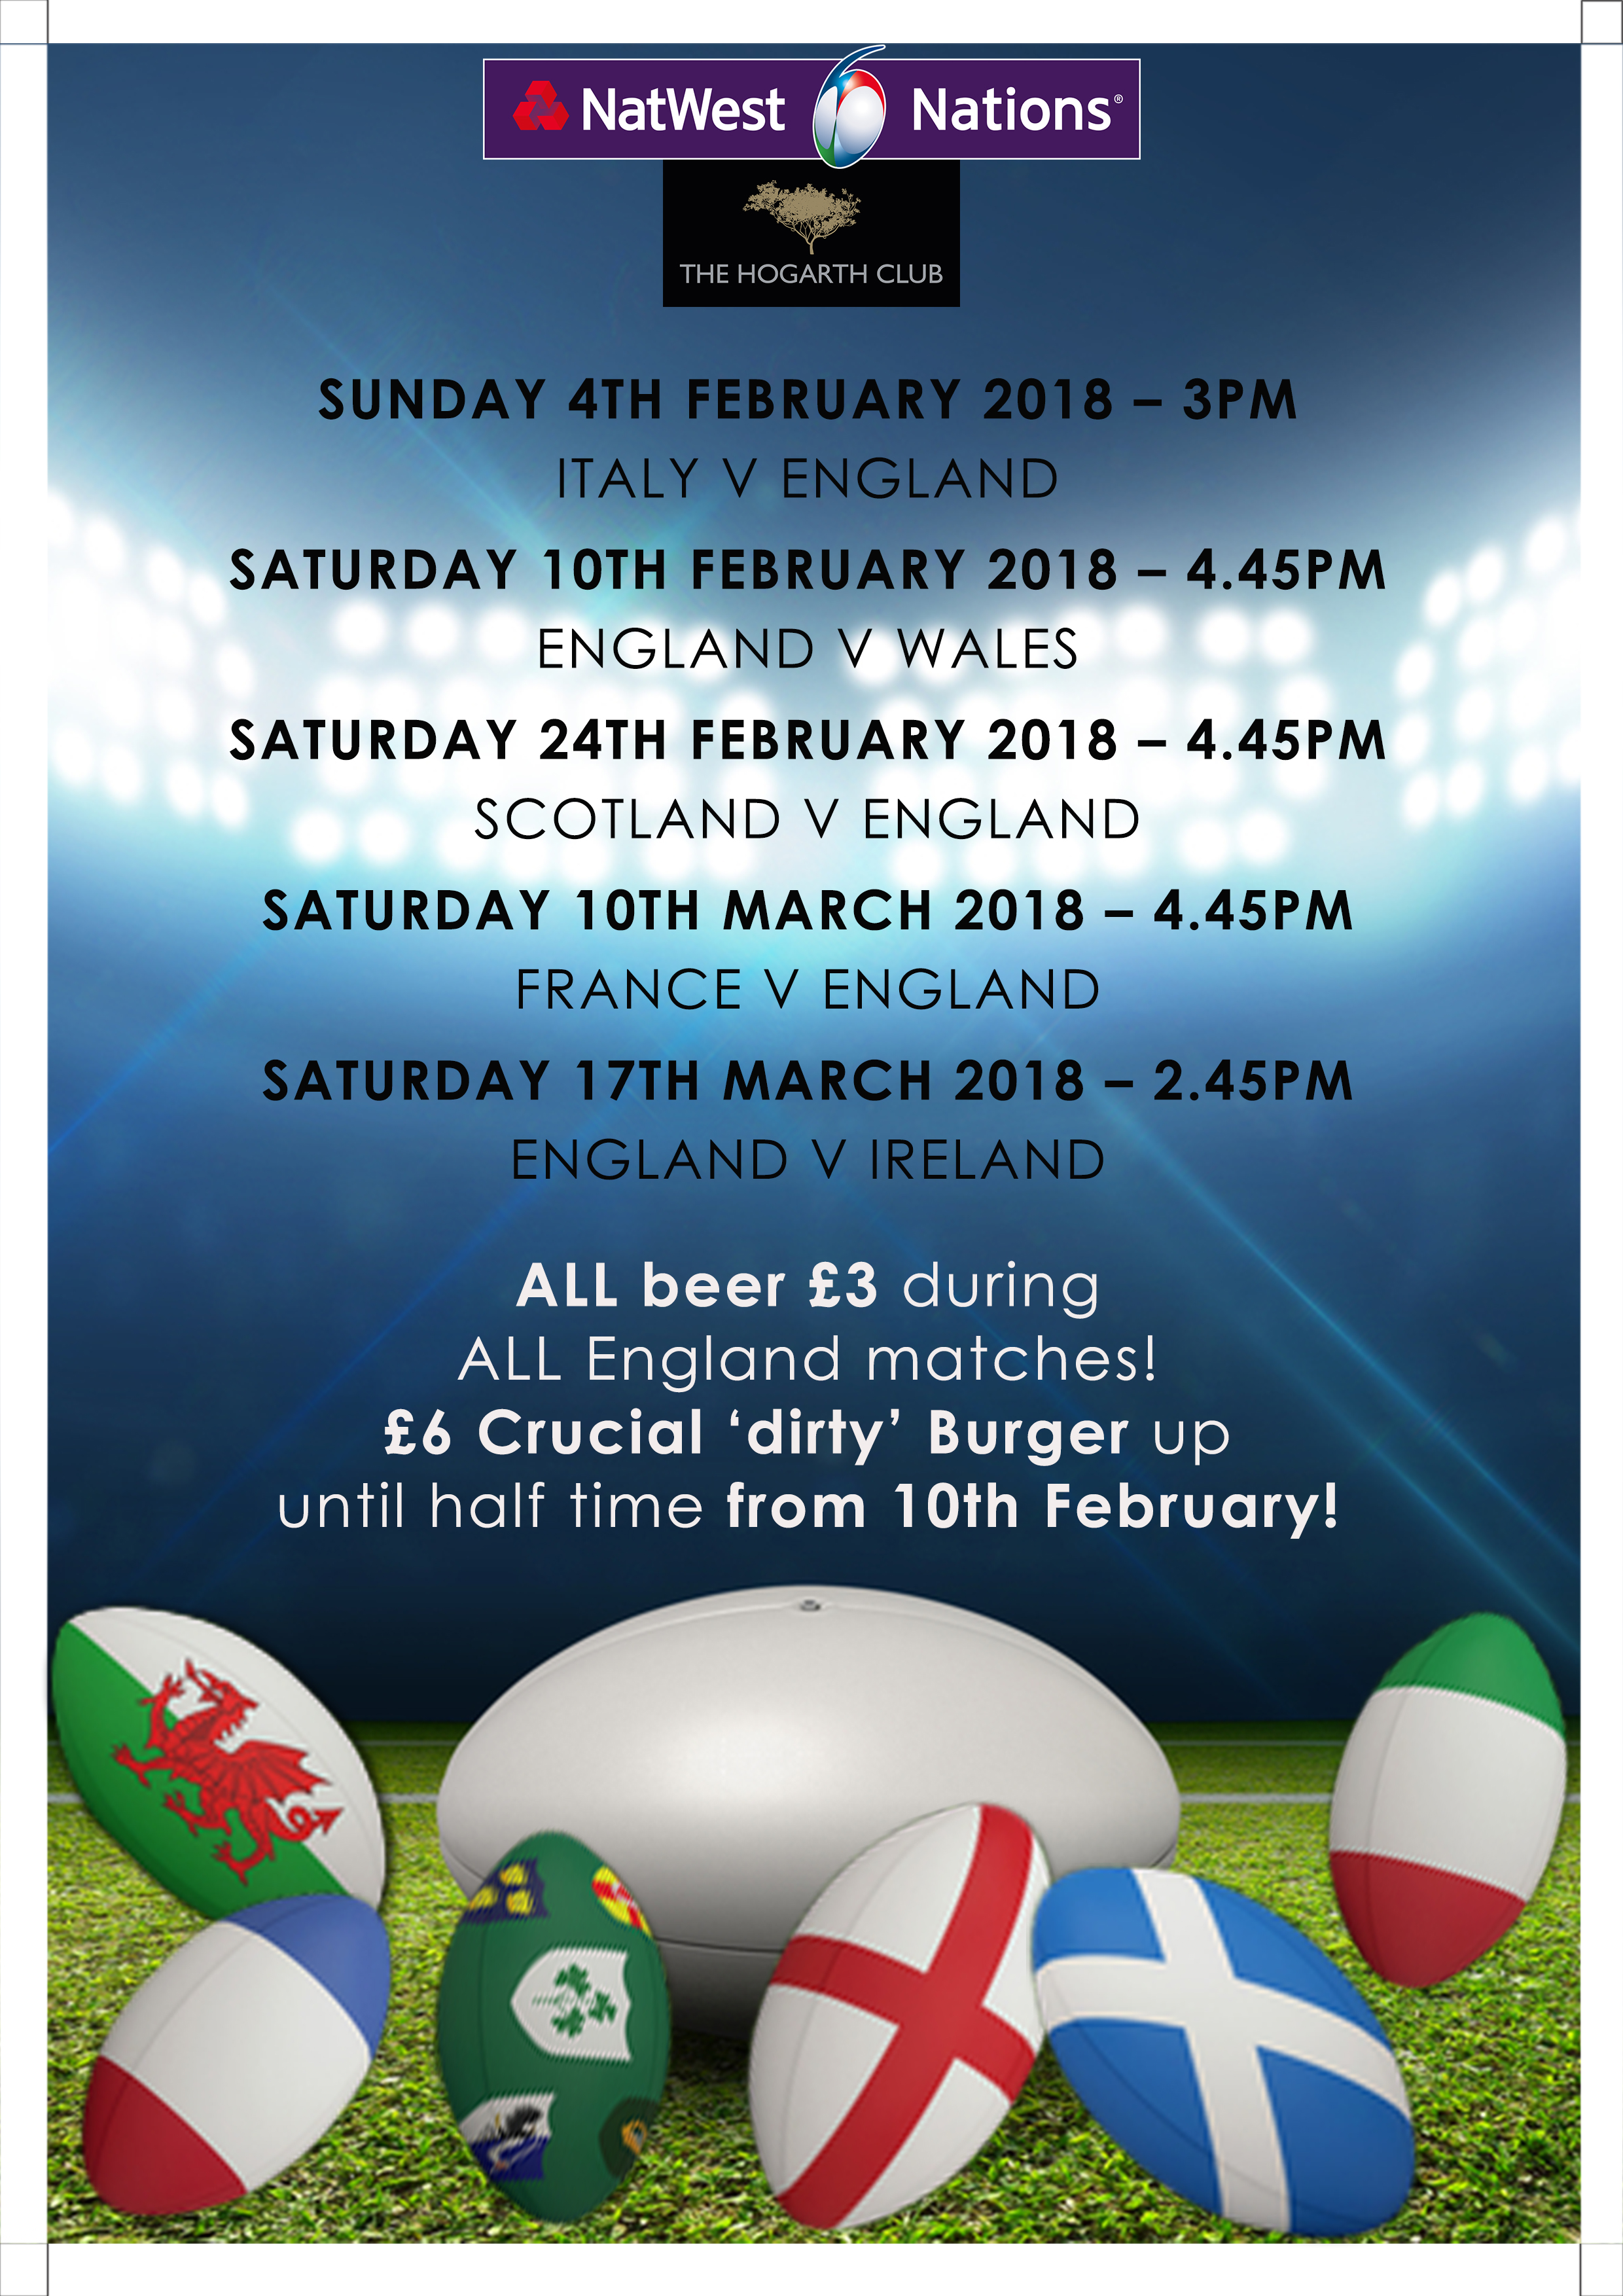 Six Nations Rugby watch at The Hogarth Club in Chiswick